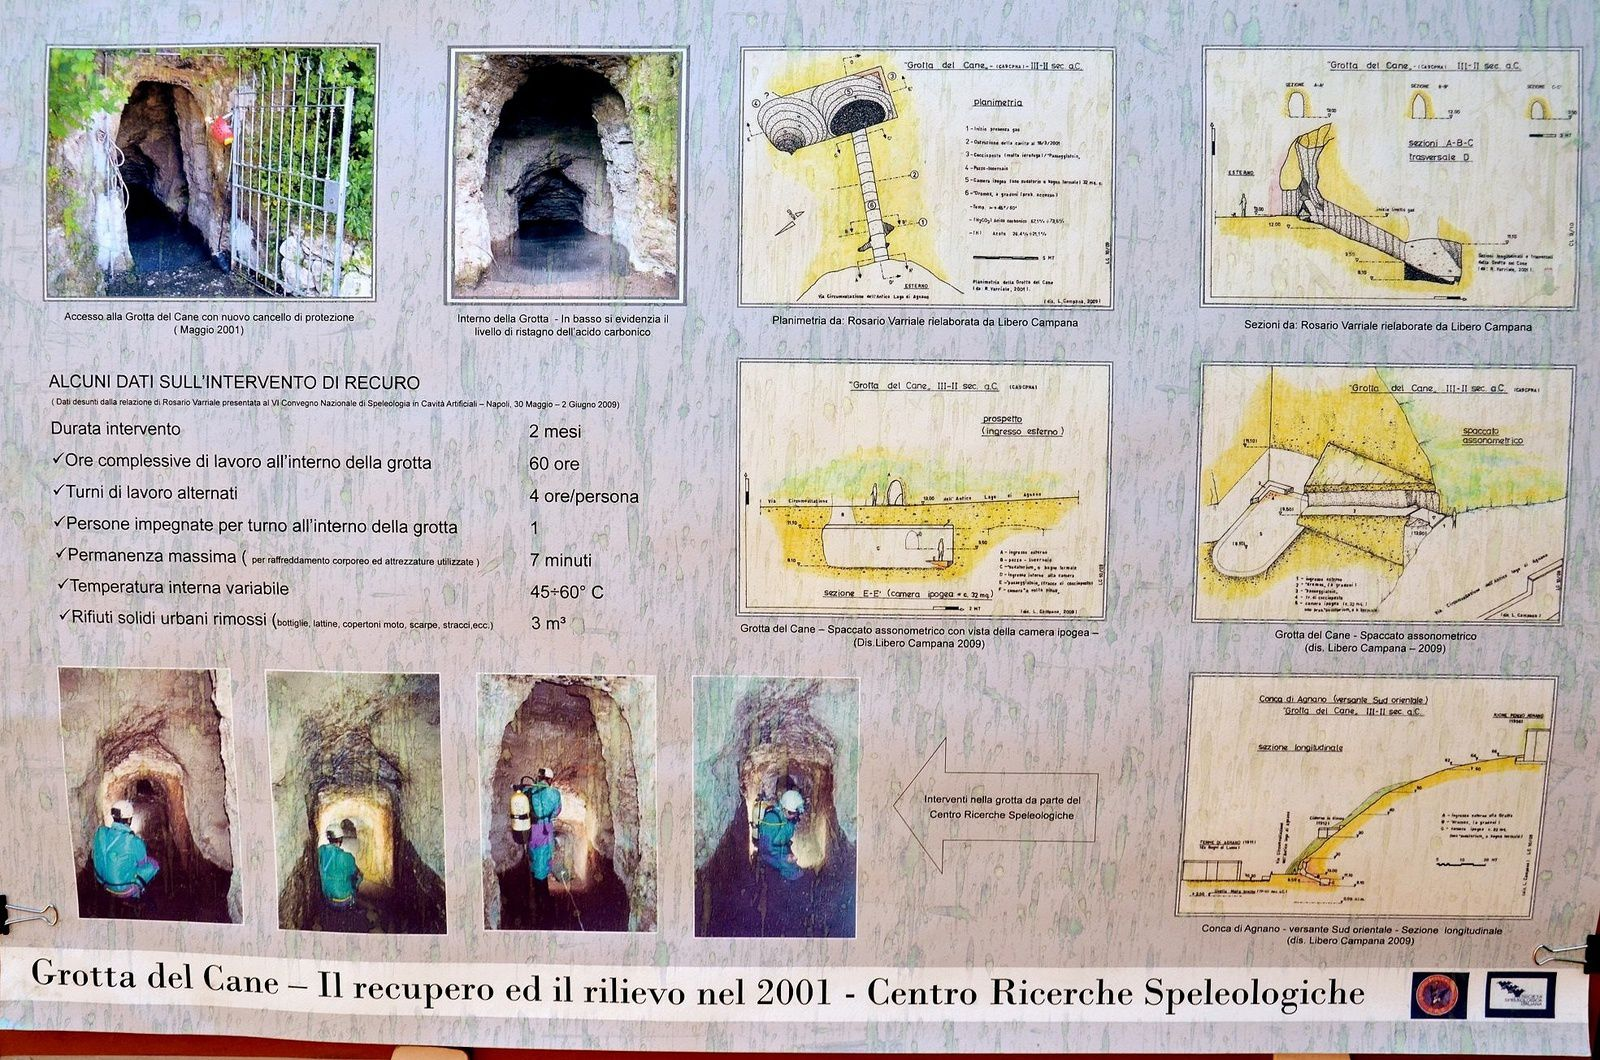 Grotta del Cane - surveys carried out in 2001 by the speological research center.